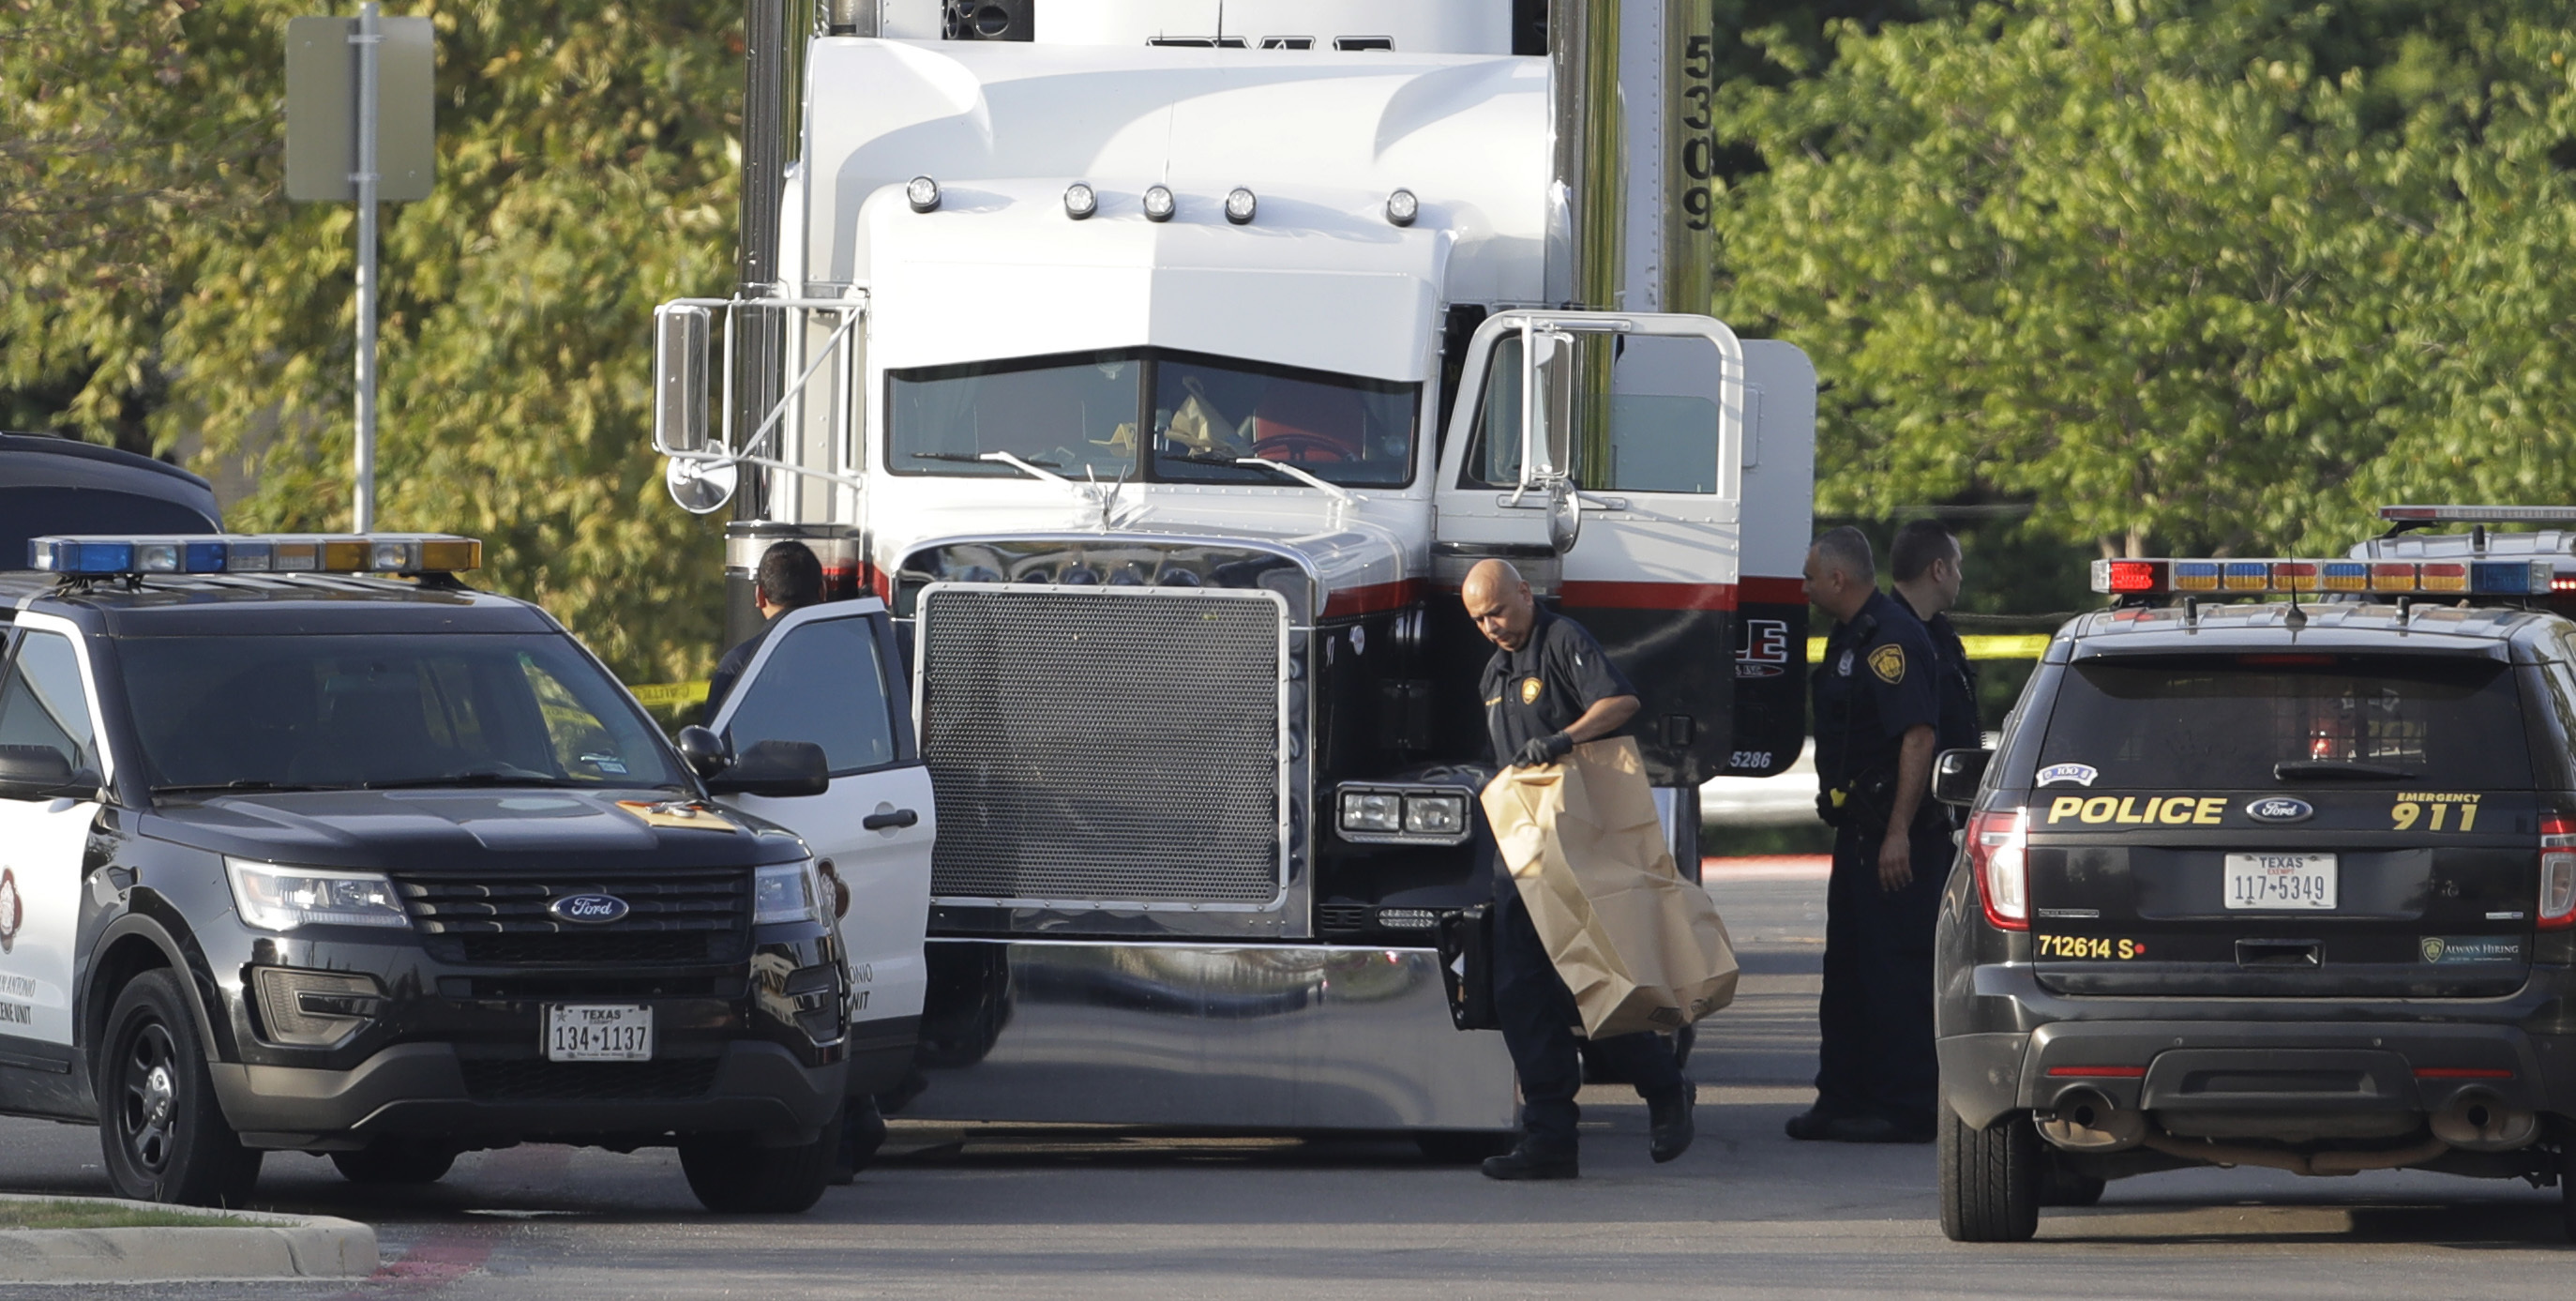 Walmart carpark deaths in San Antonio, Texas: Nine dead in tragedy